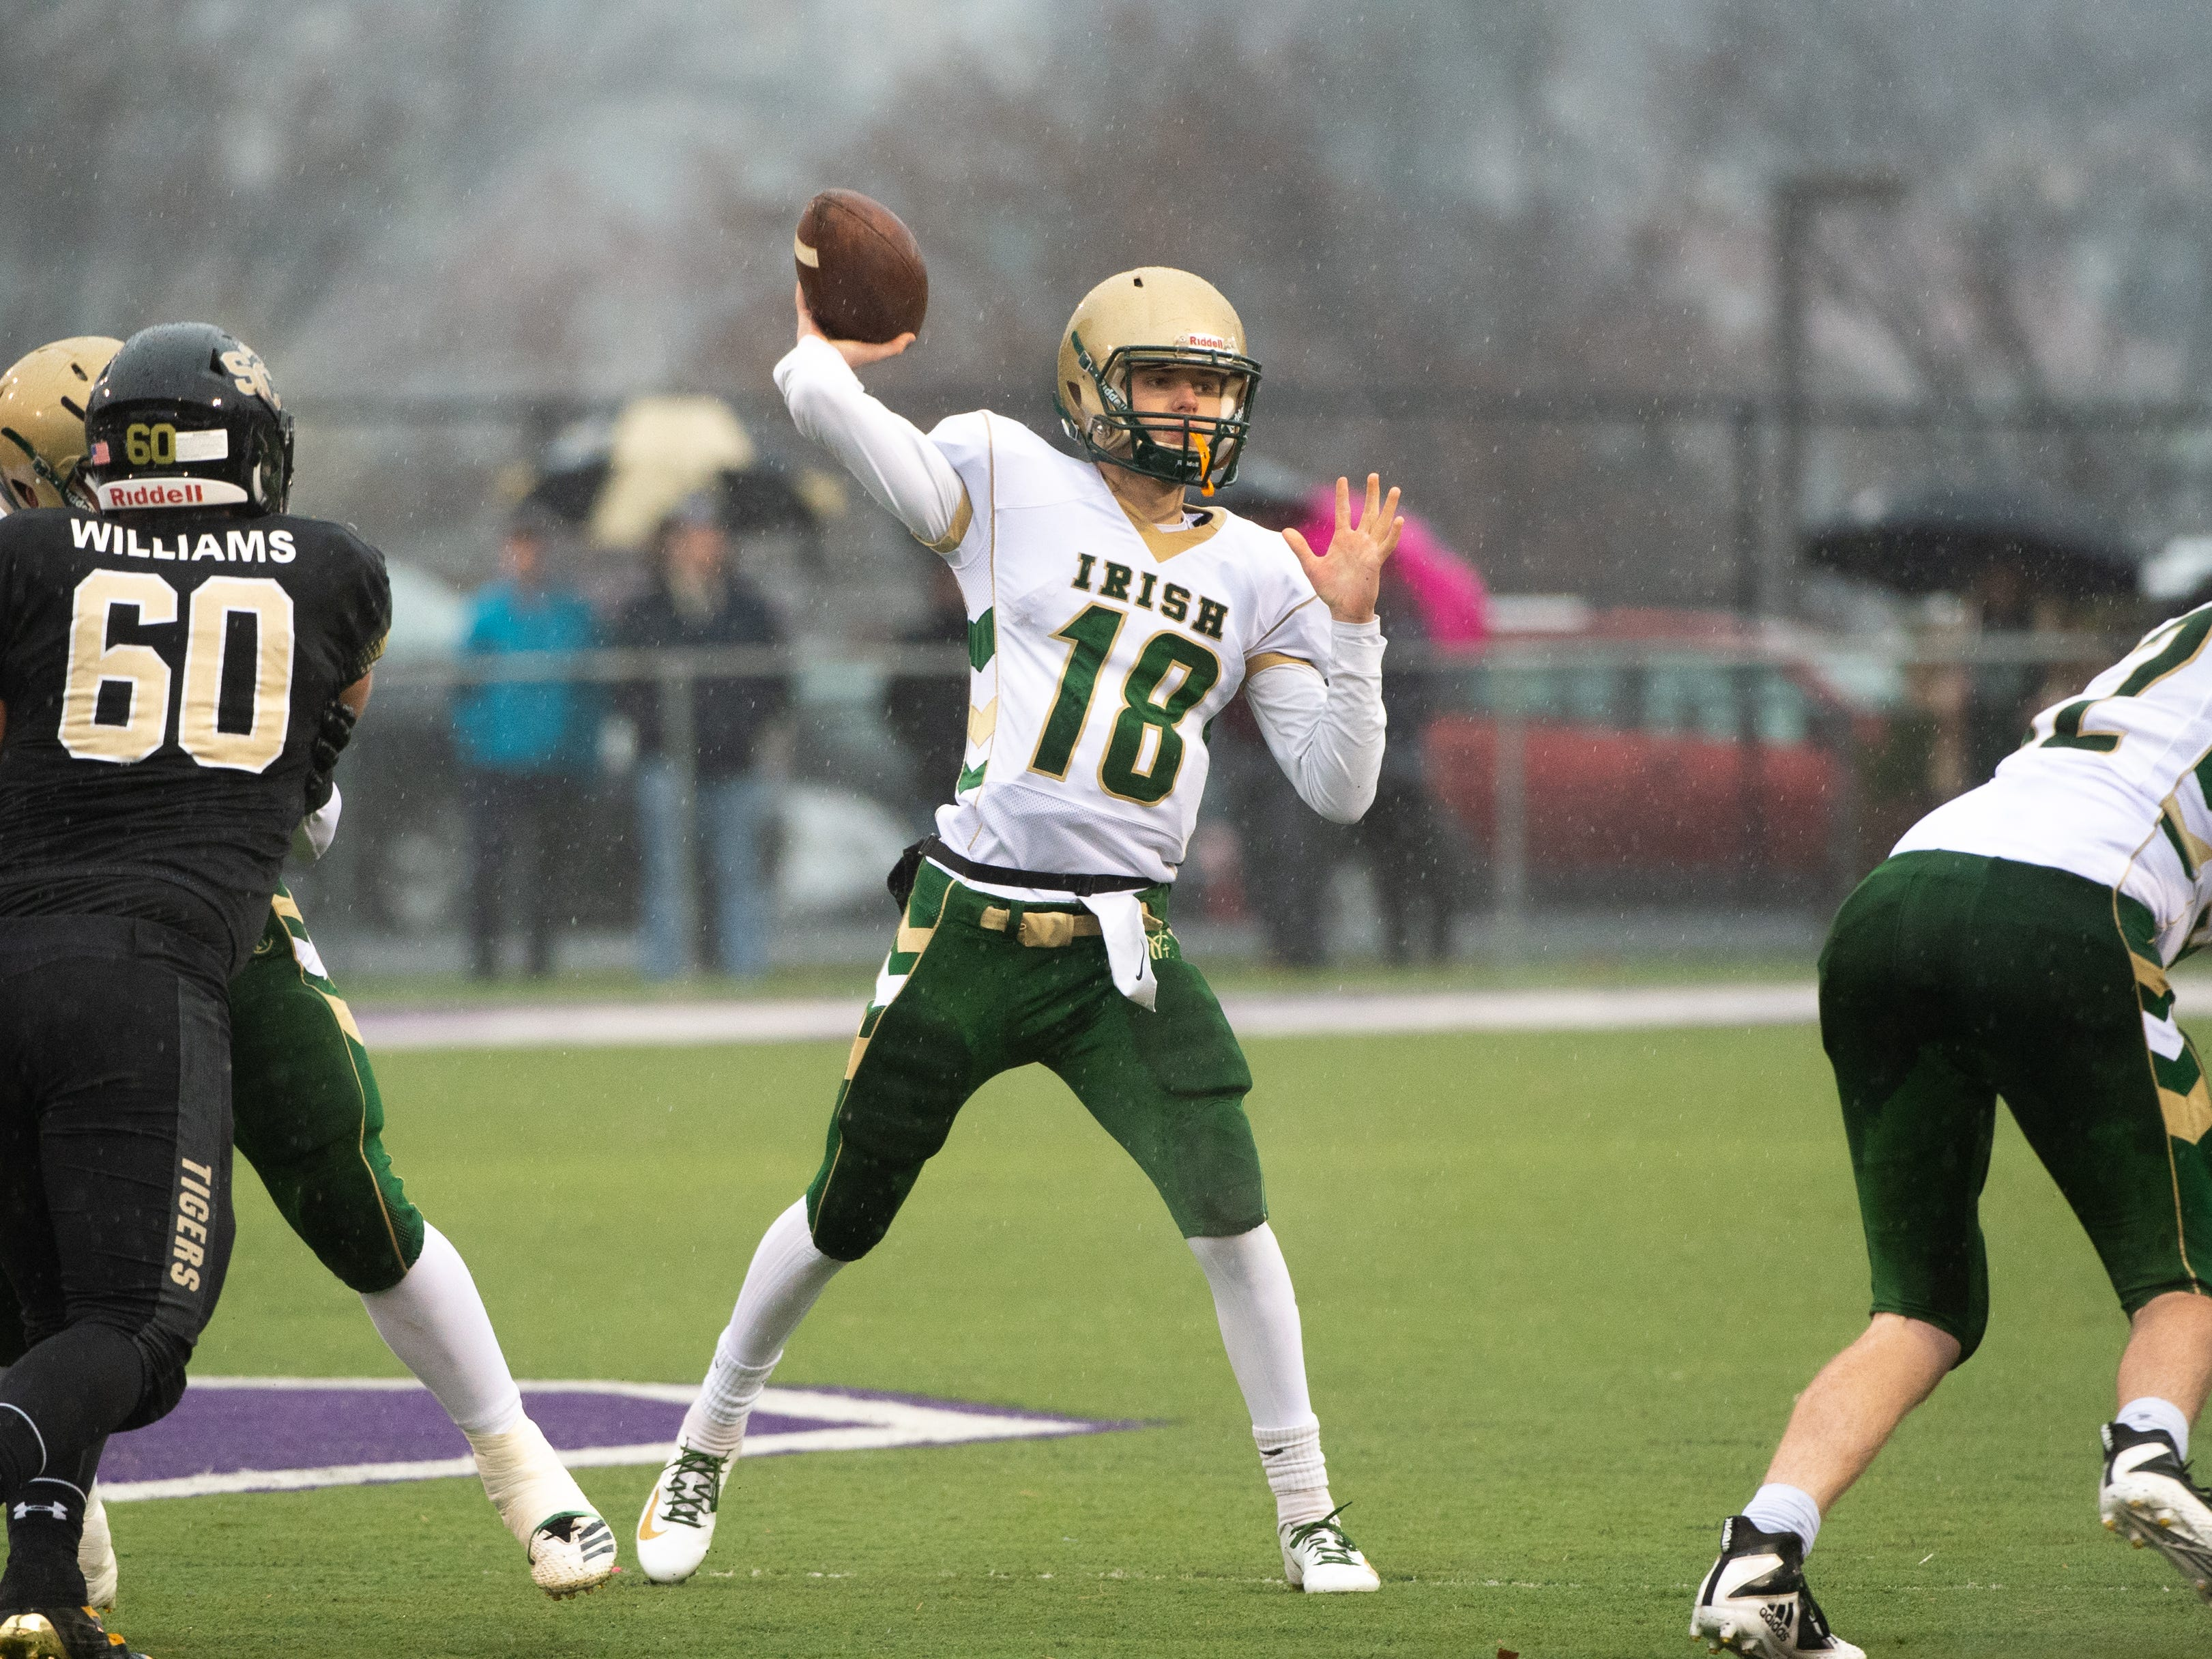 Wesley Burns (18) has room to throw during the state quarter-finals game between York Catholic and Southern Columbia at Shamokin Area High School, November 24, 2018. The Tigers defeated the Irish 56-23.